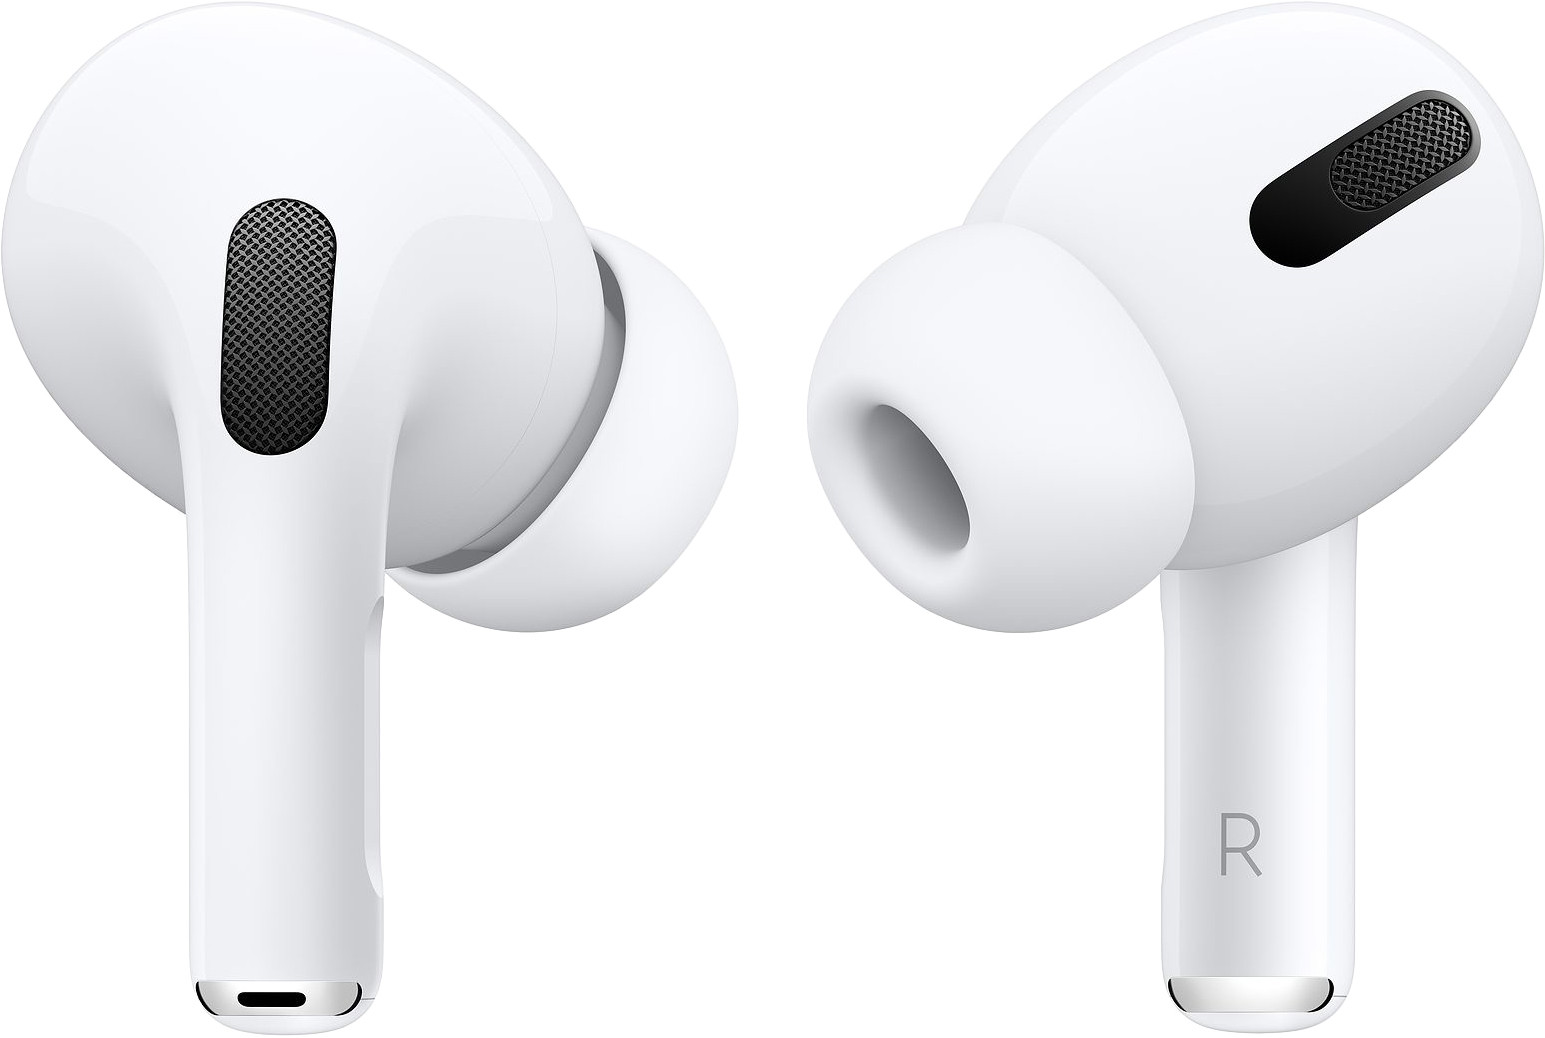 Apple AirPods Pro + wireless charging case (MWP22ZM/A)